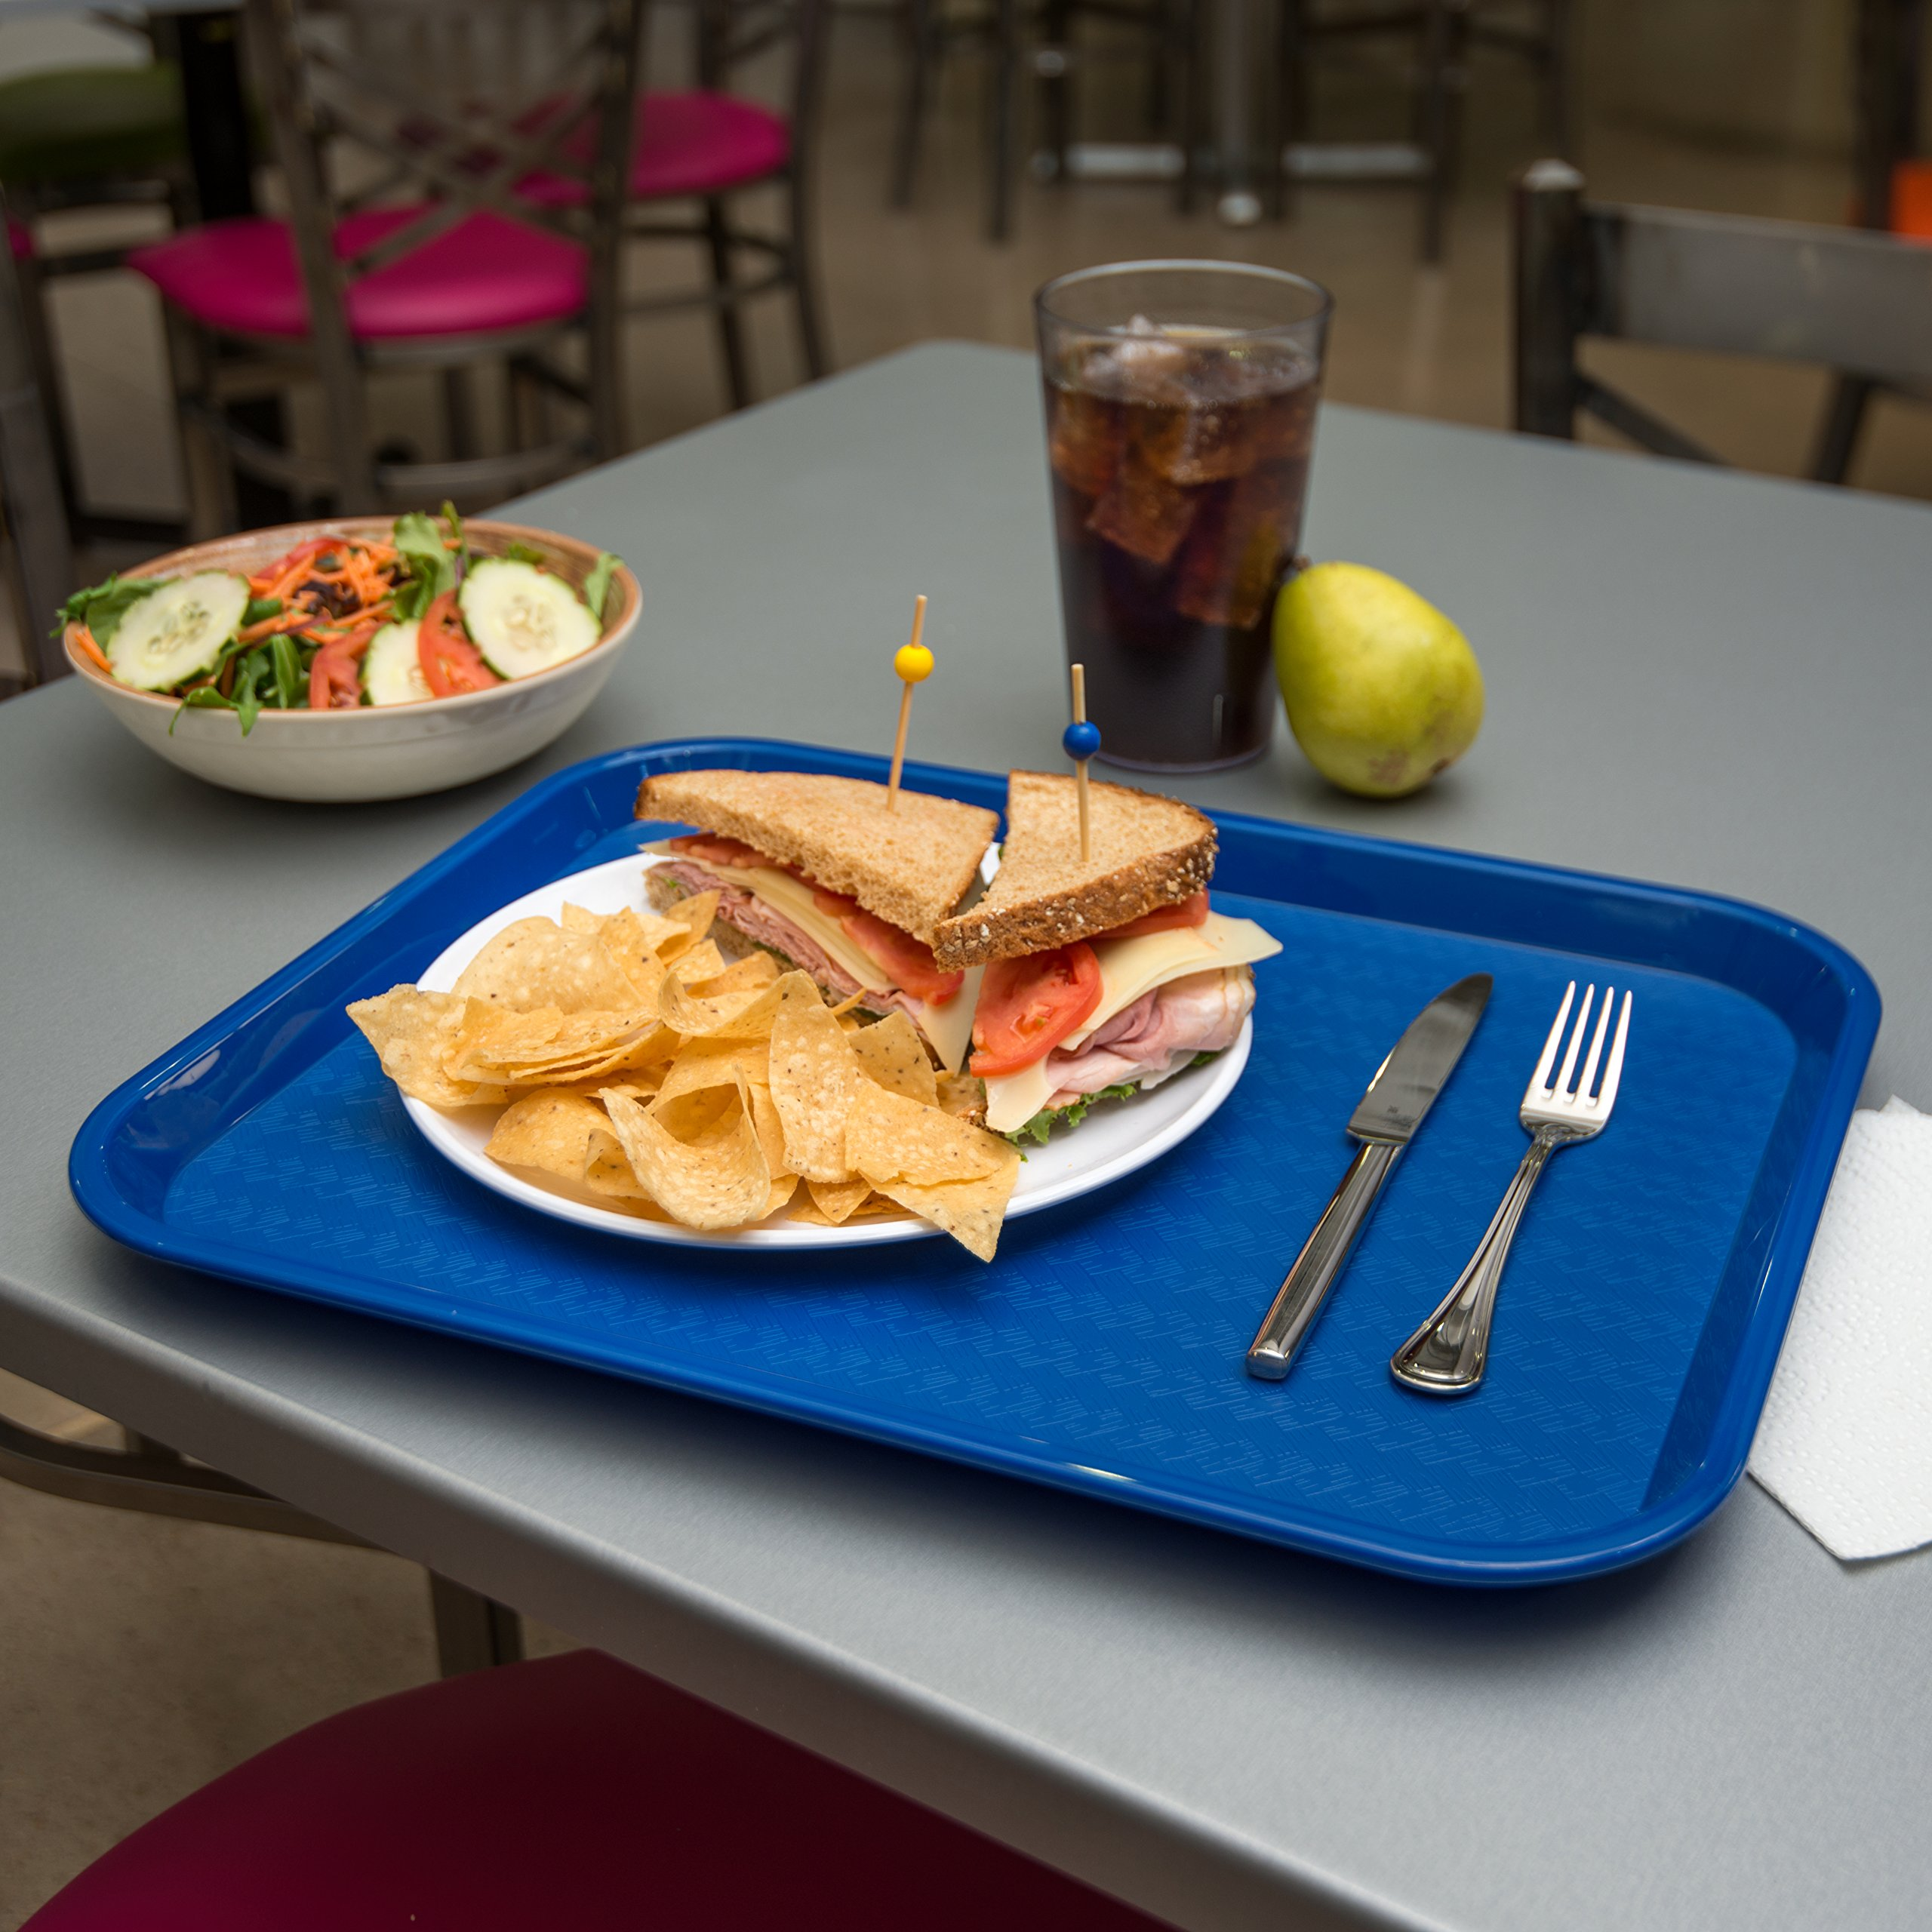 Carlisle CT141814 Café Standard Cafeteria / Fast Food Tray, 14'' x 18'', Blue (Pack of 12) by Carlisle (Image #6)